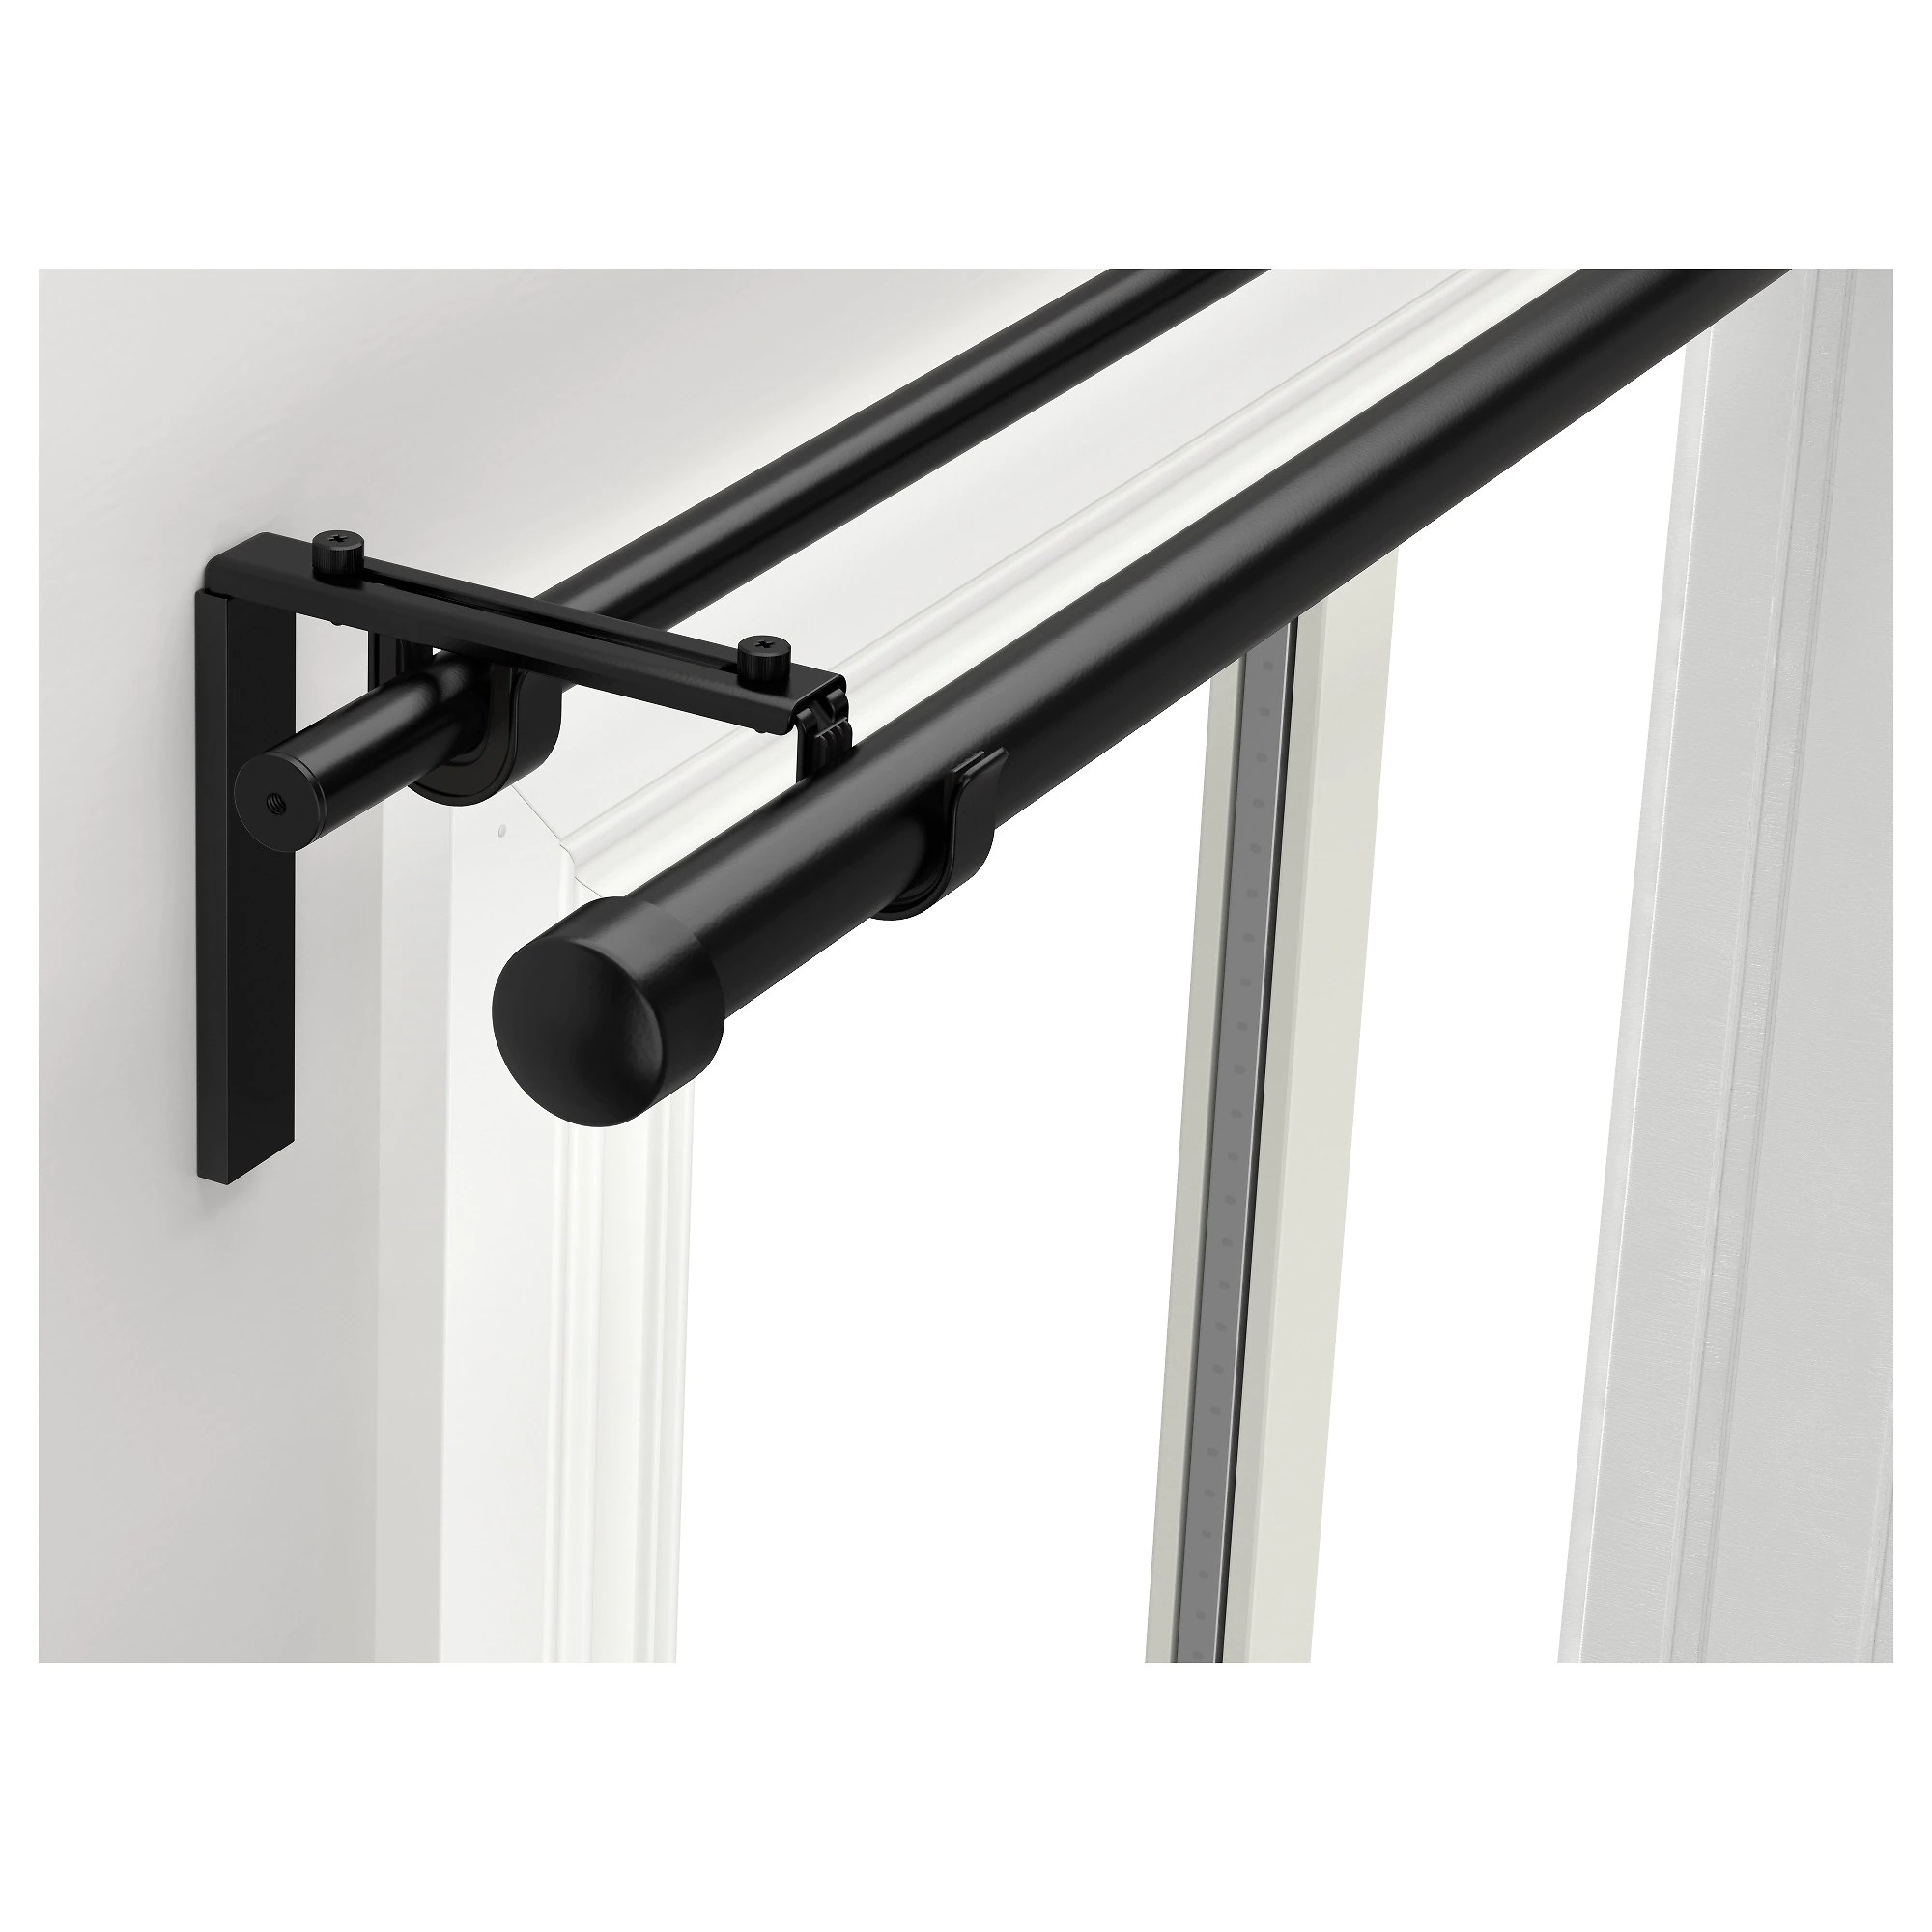 RÄCKA HUGAD Double Curtain Rod Combination IKEA